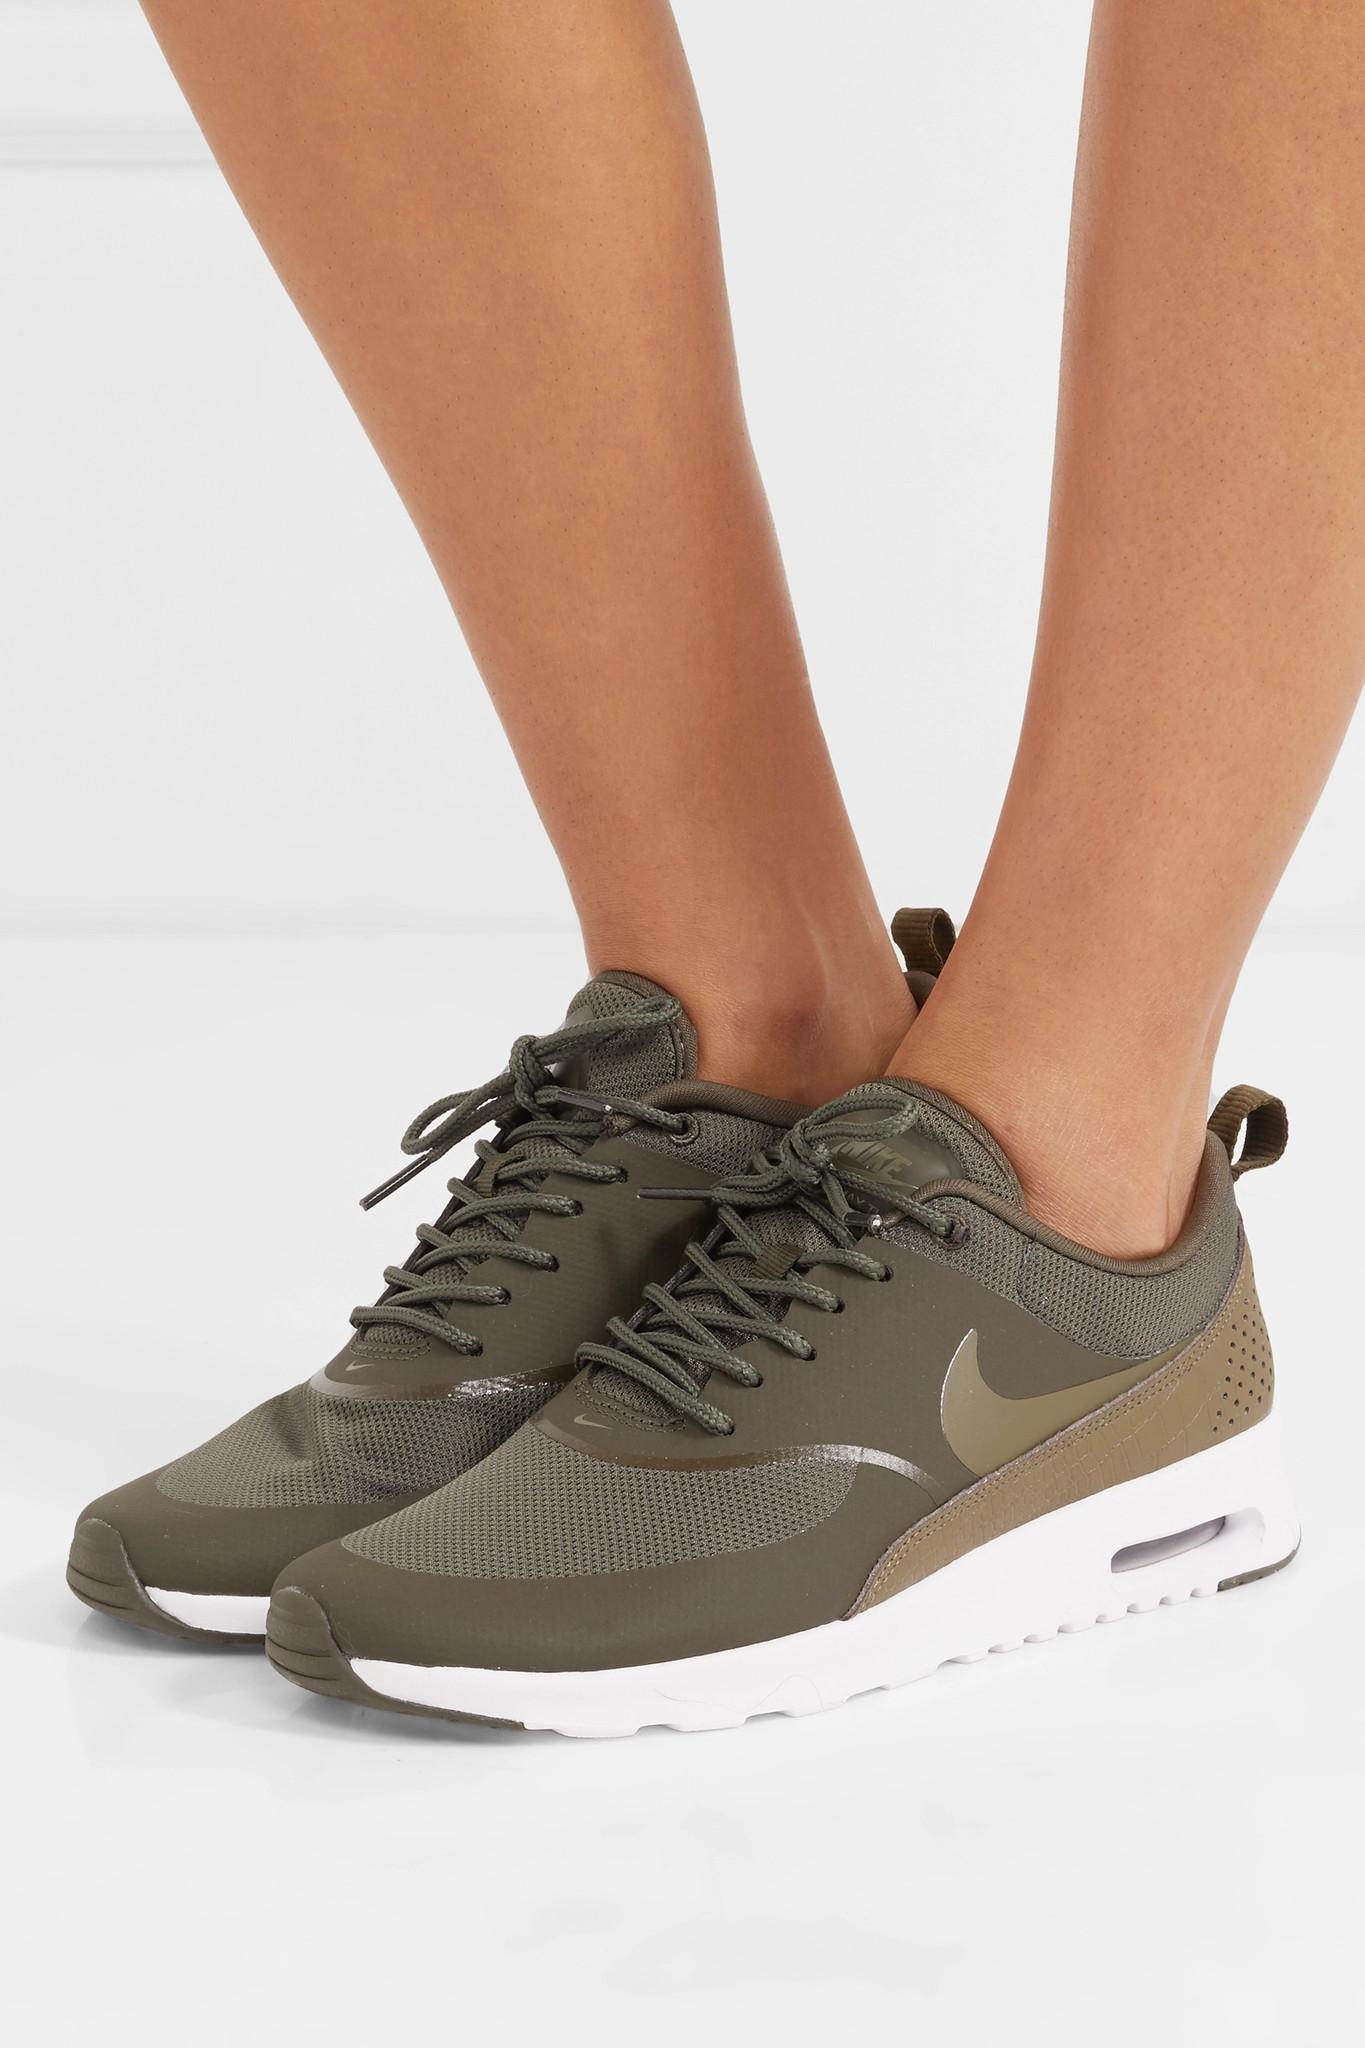 63064649e1 Nike Air Max Thea Rubber, Stretch-mesh And Croc-effect Leather ...